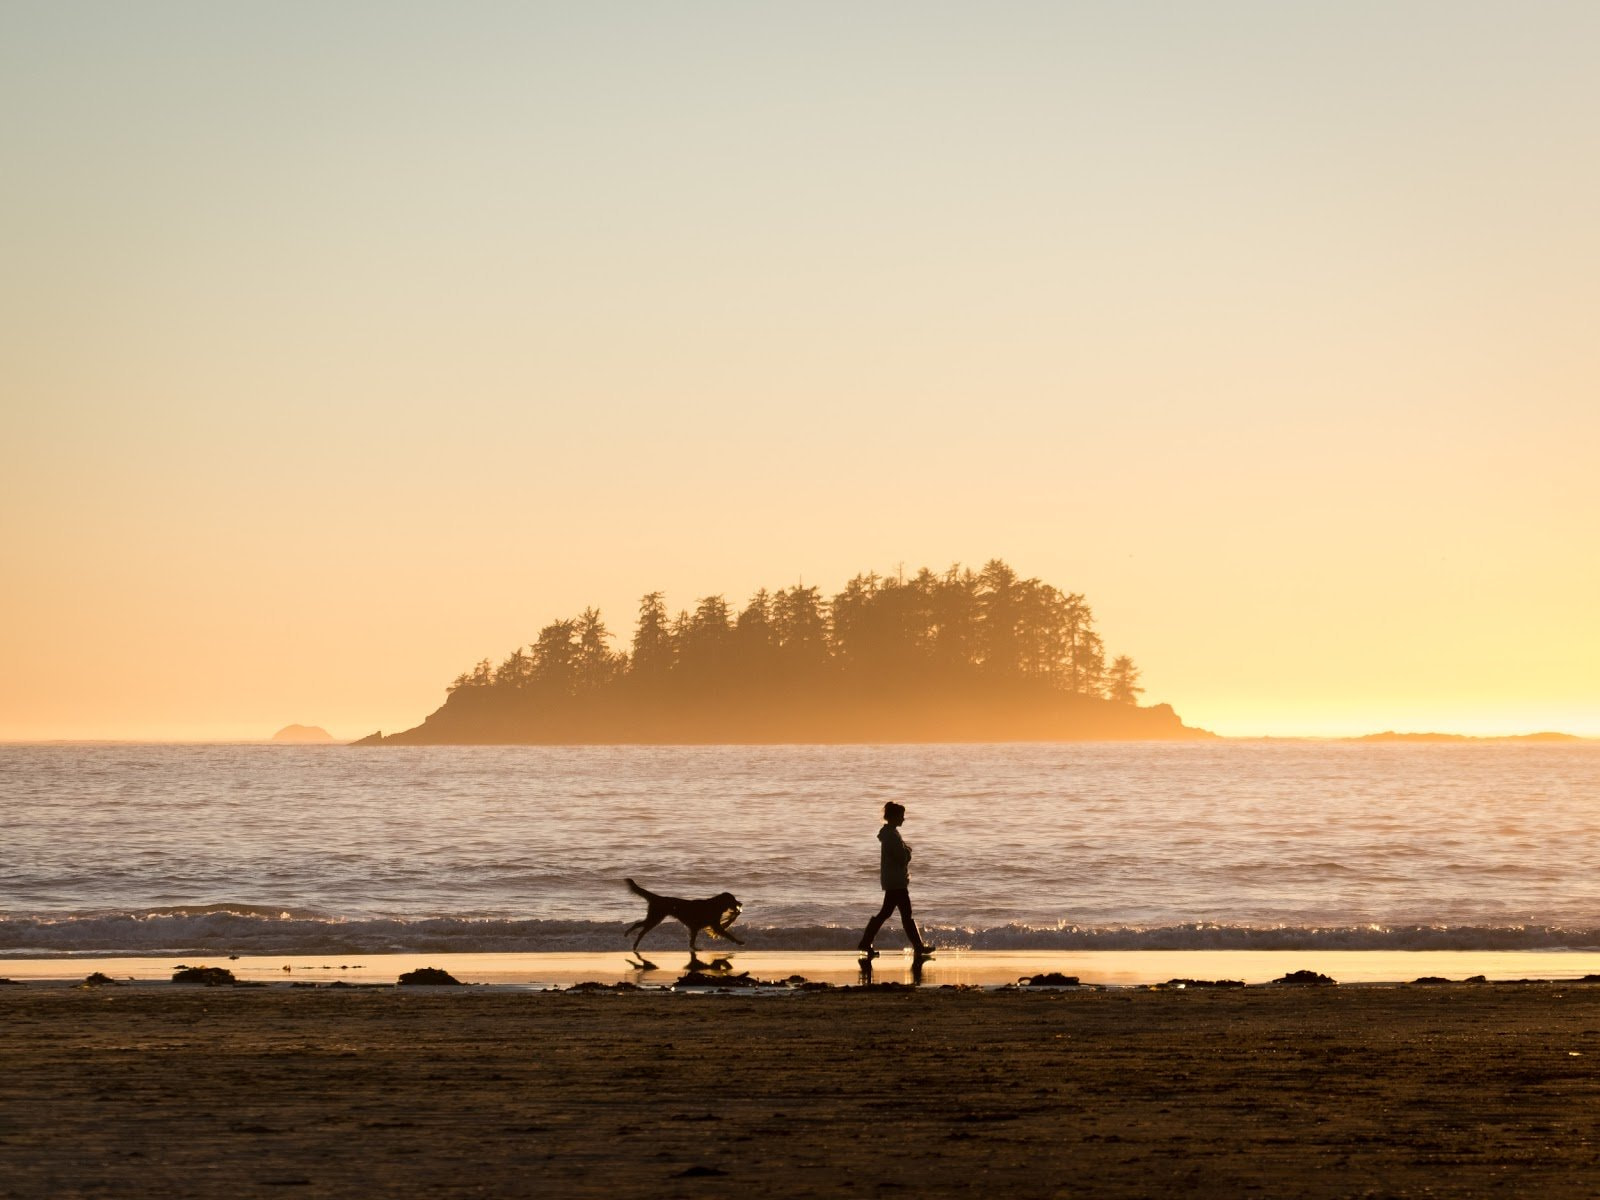 A woman and a dog walking along the beach during golden hour by Spencer Watson